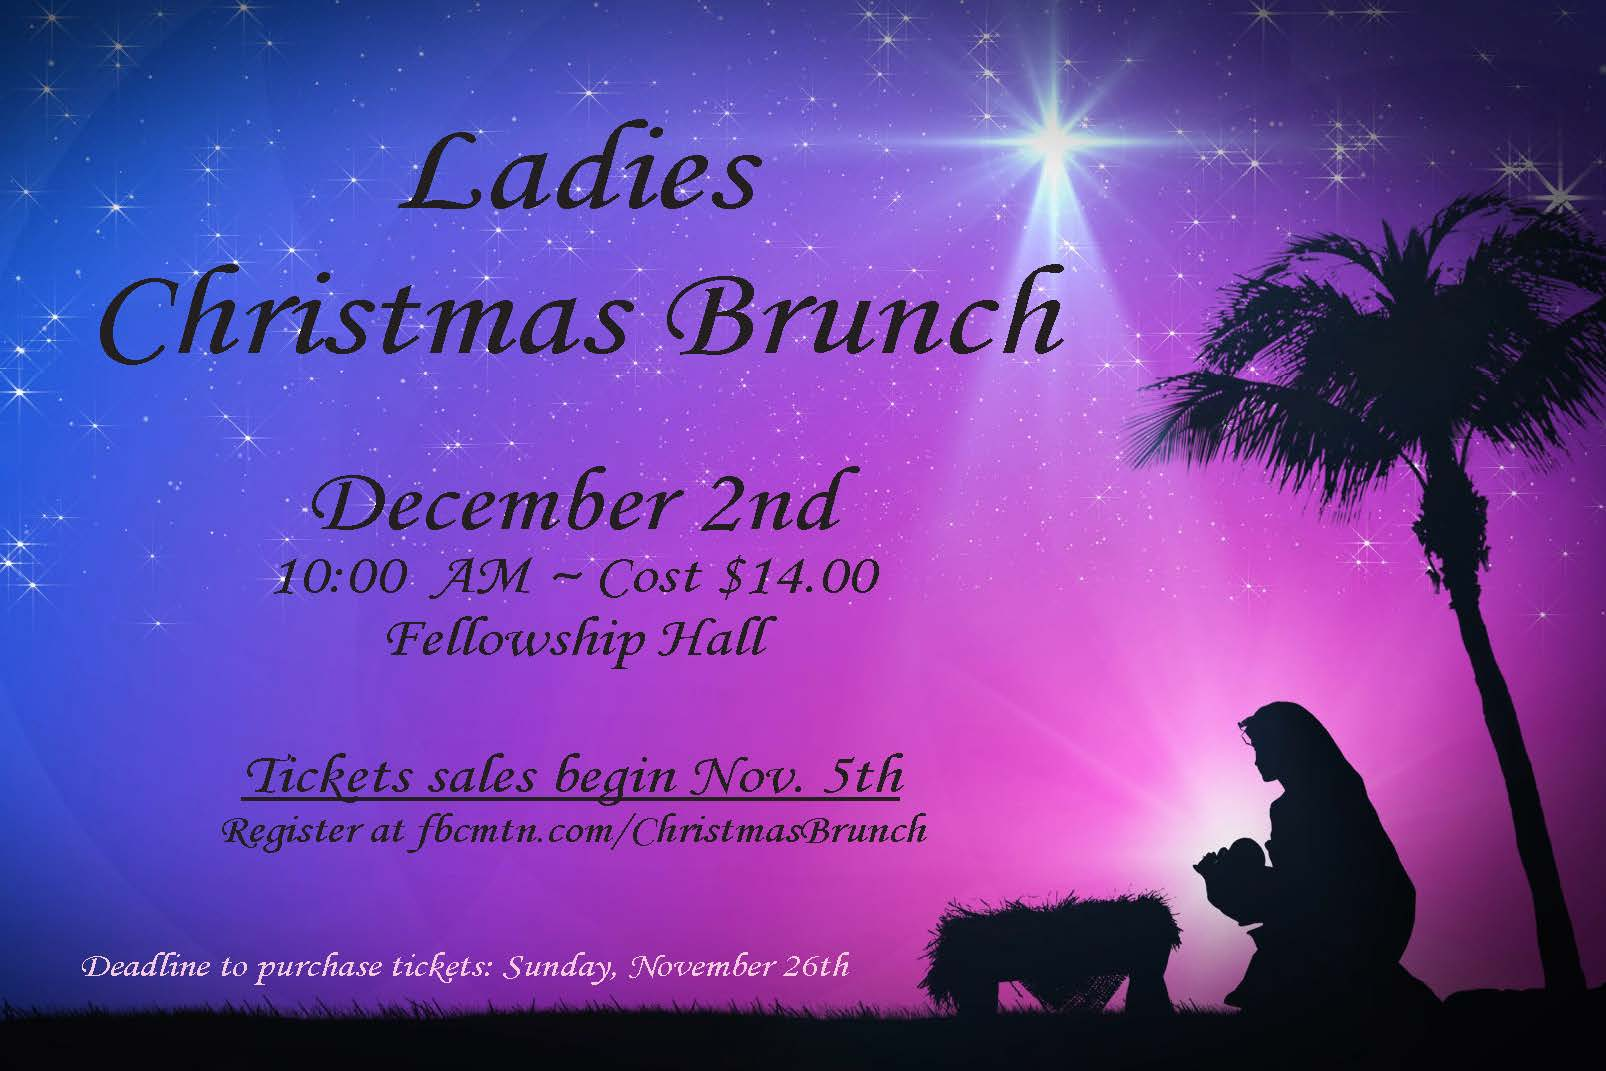 Ladies christmas brunch logo